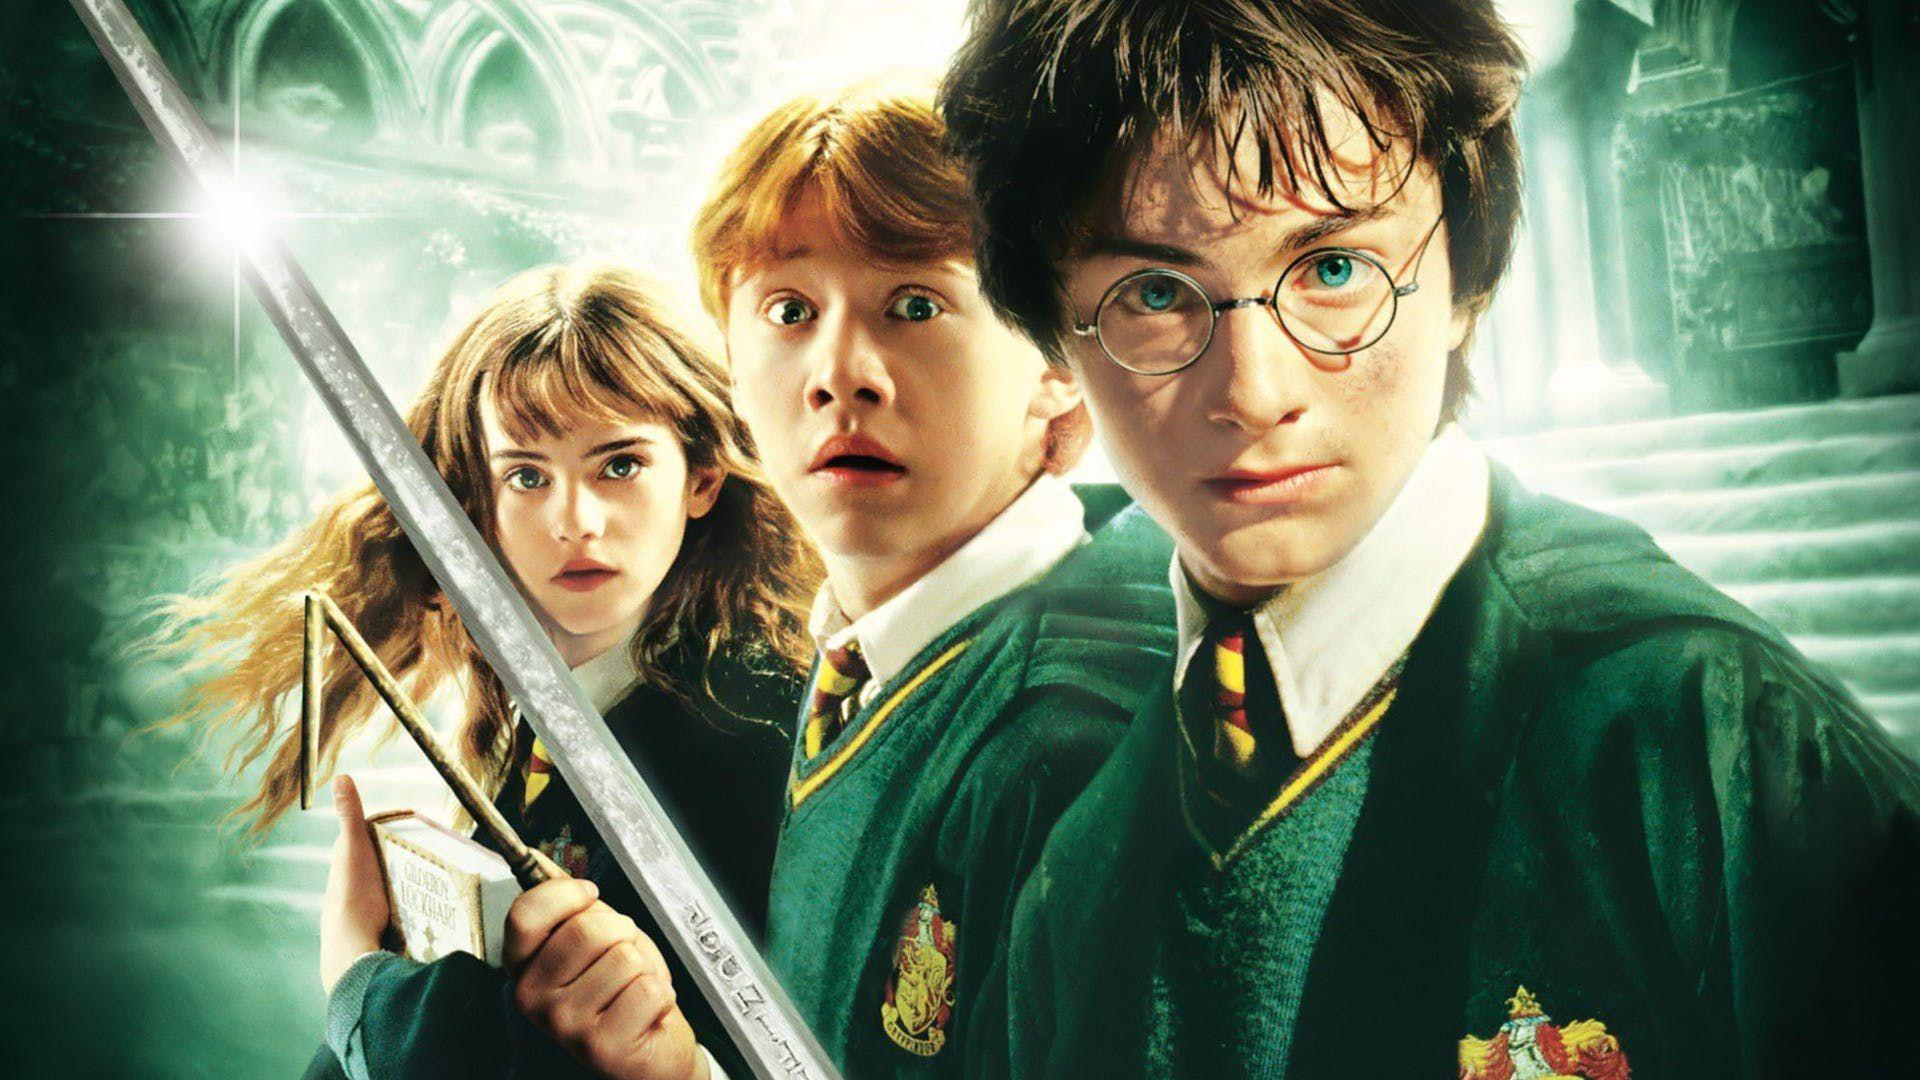 Harry Potter: what character would be your best friend?